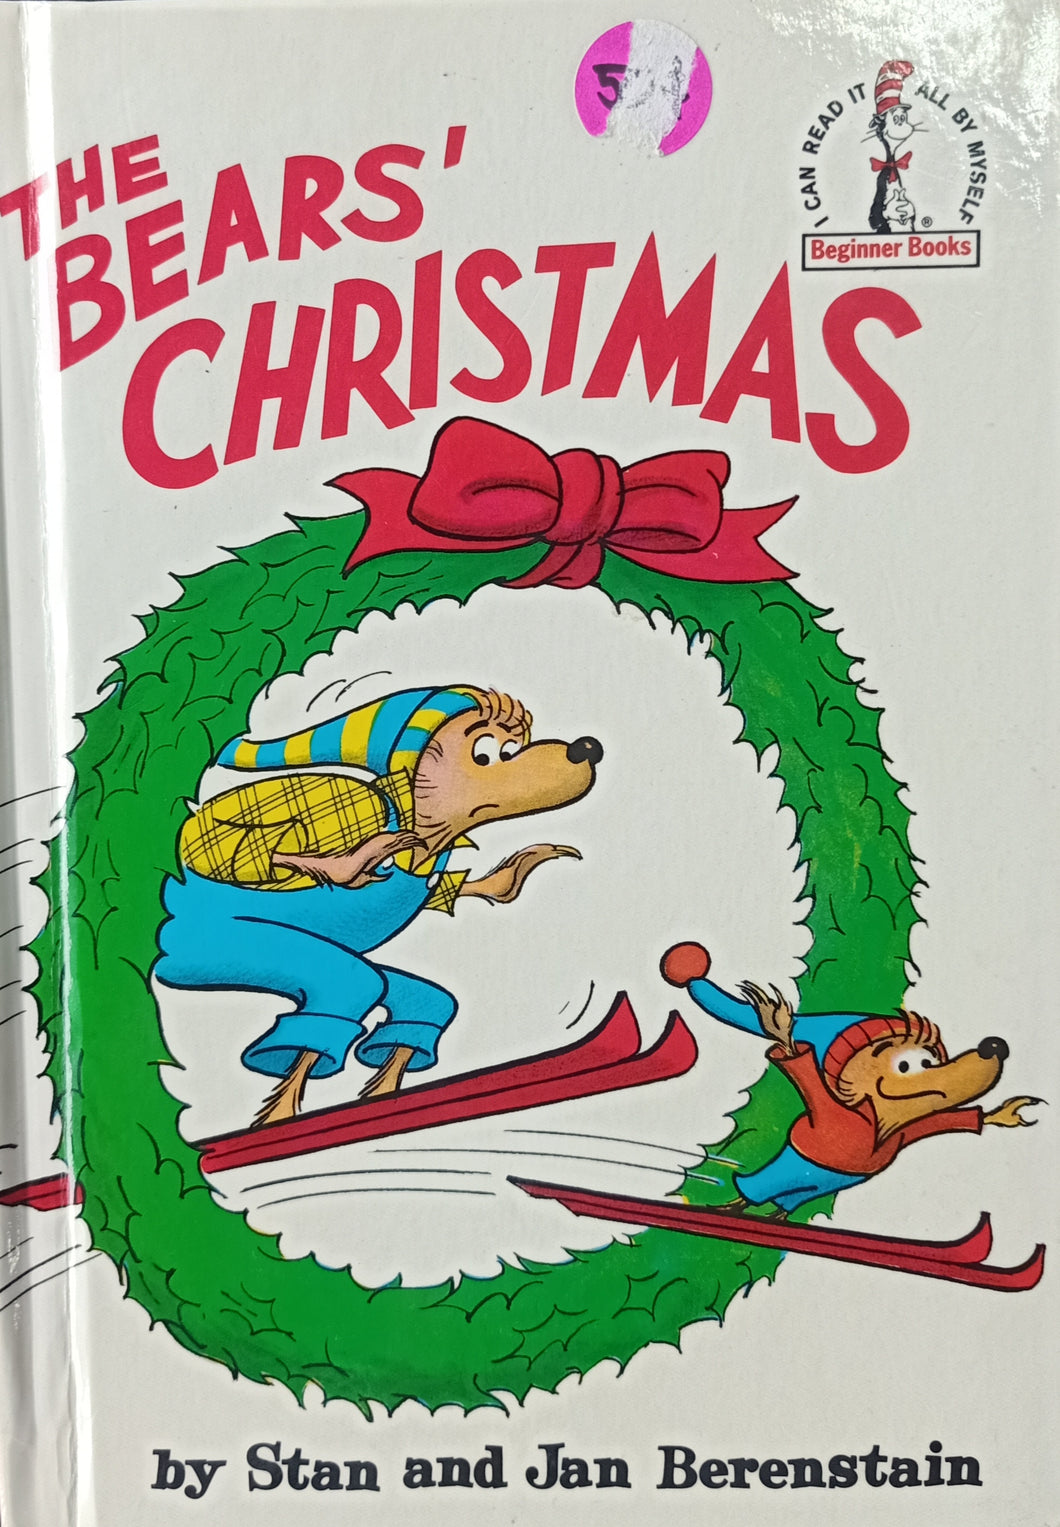 The Bears Christmas by Stan & JAN berenstain